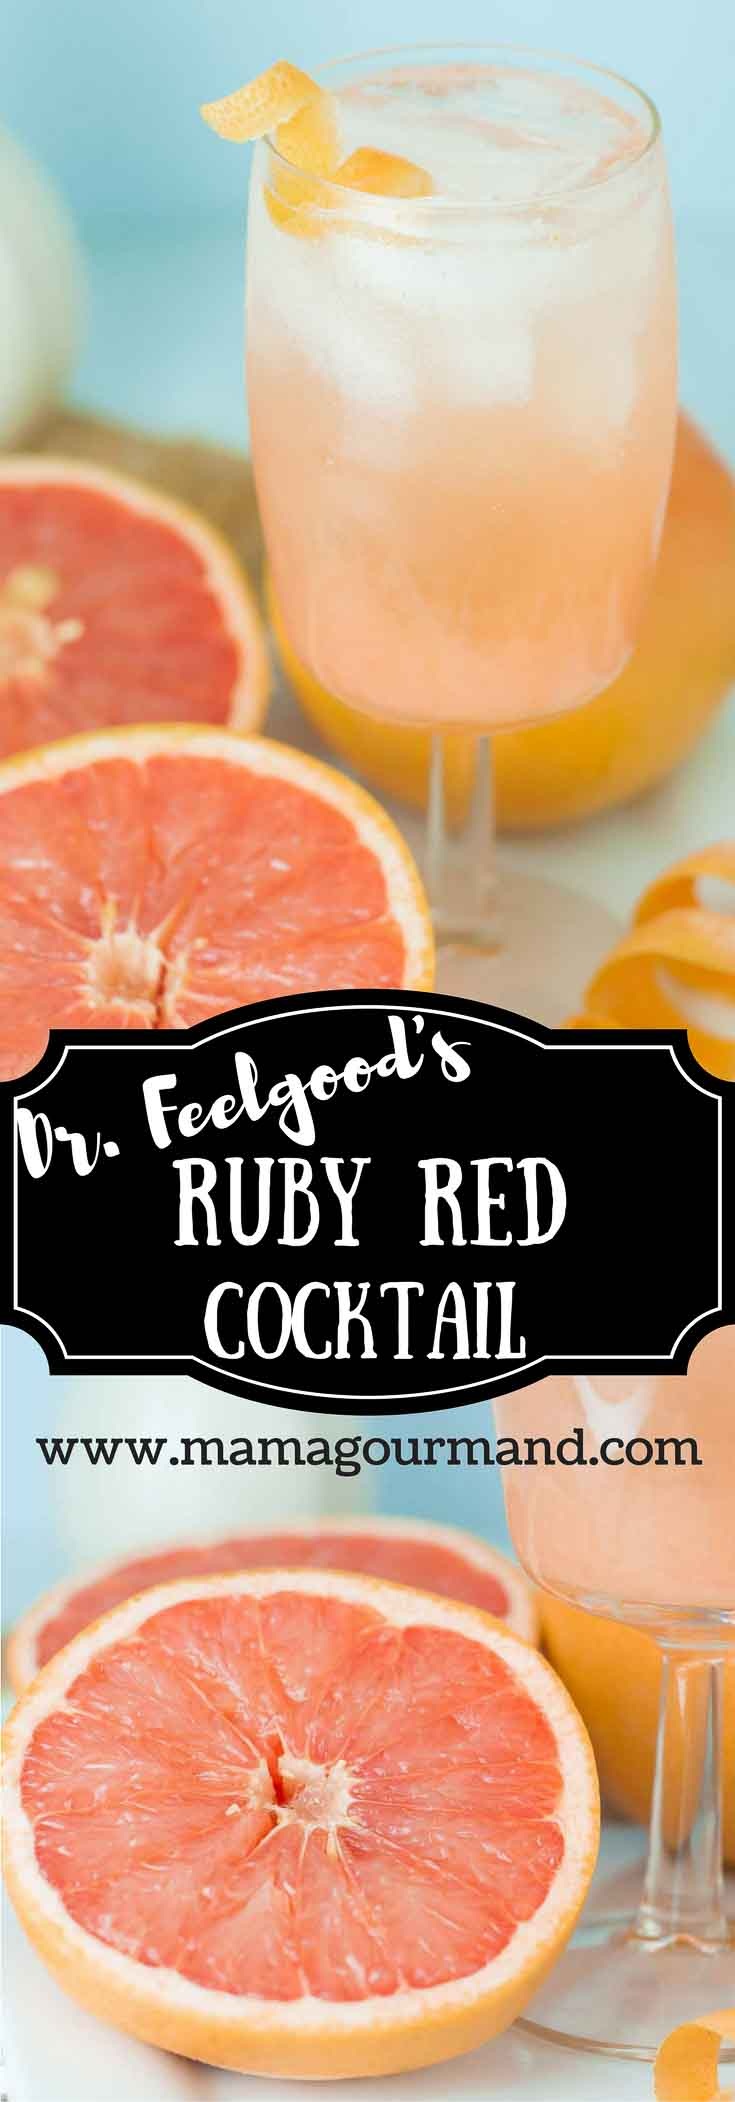 Dr. Feelgood's Grapefruit Cocktail combines fresh ruby red grapefruit juice, tangy grapefruit vodka, and sparkling ginger ale. http://www.mamagourmand.com